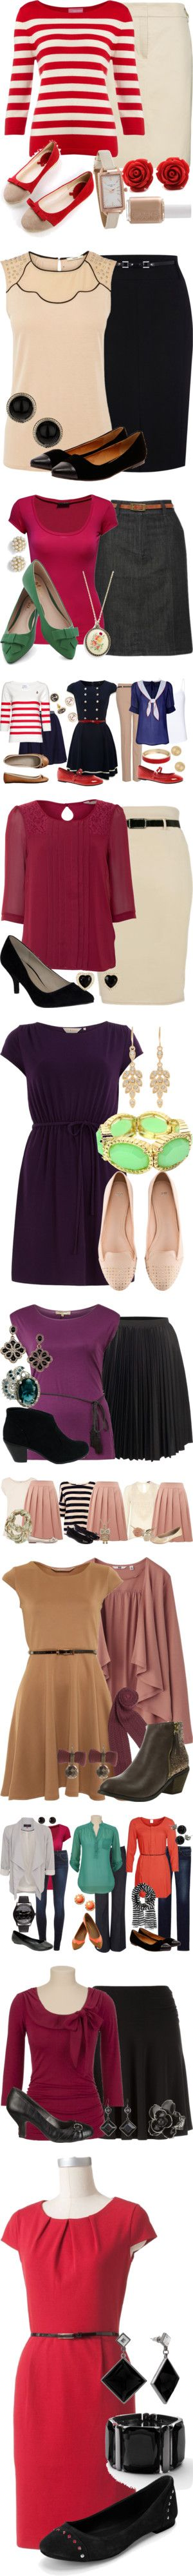 Teacher Outfits on a Teacher's Budget by allij28 on Polyvore featuring MANGO, The Department, Infinite, Essie, Oasis, Boohoo, Dorothy Perkins, Jane Norman, White House Black Market and Cutie